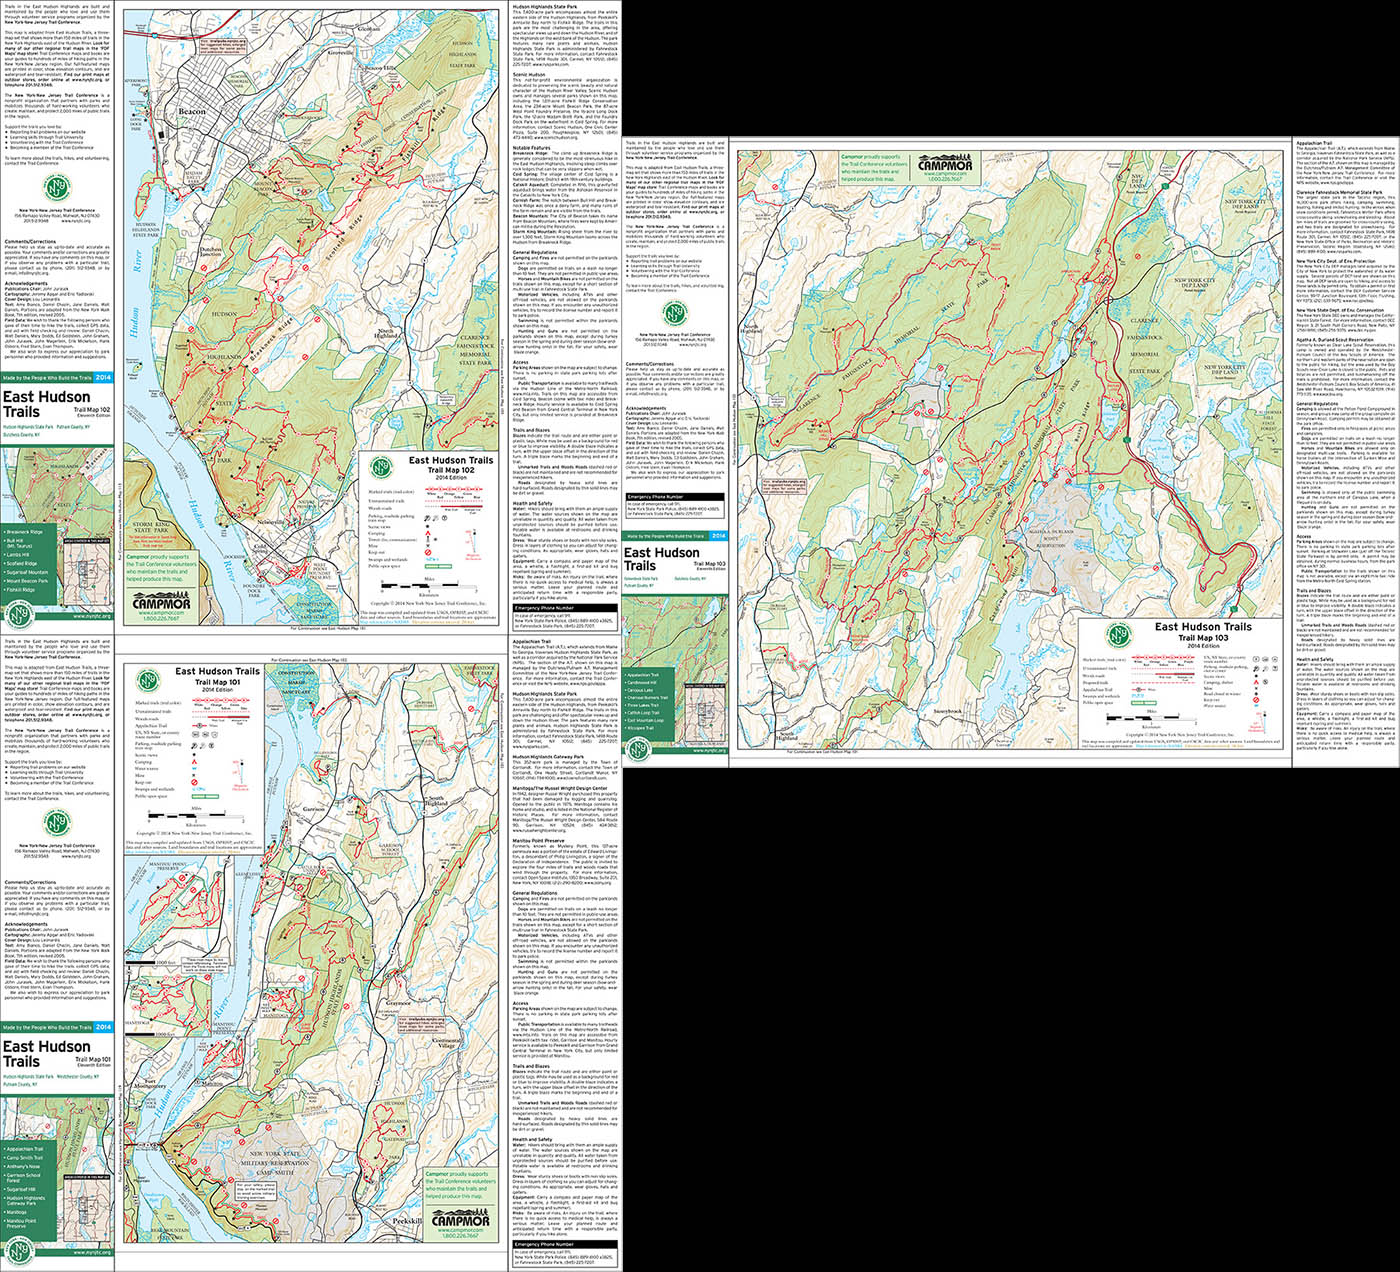 Bundle - 3-Map East Hudson - 2014 - Trail Conference